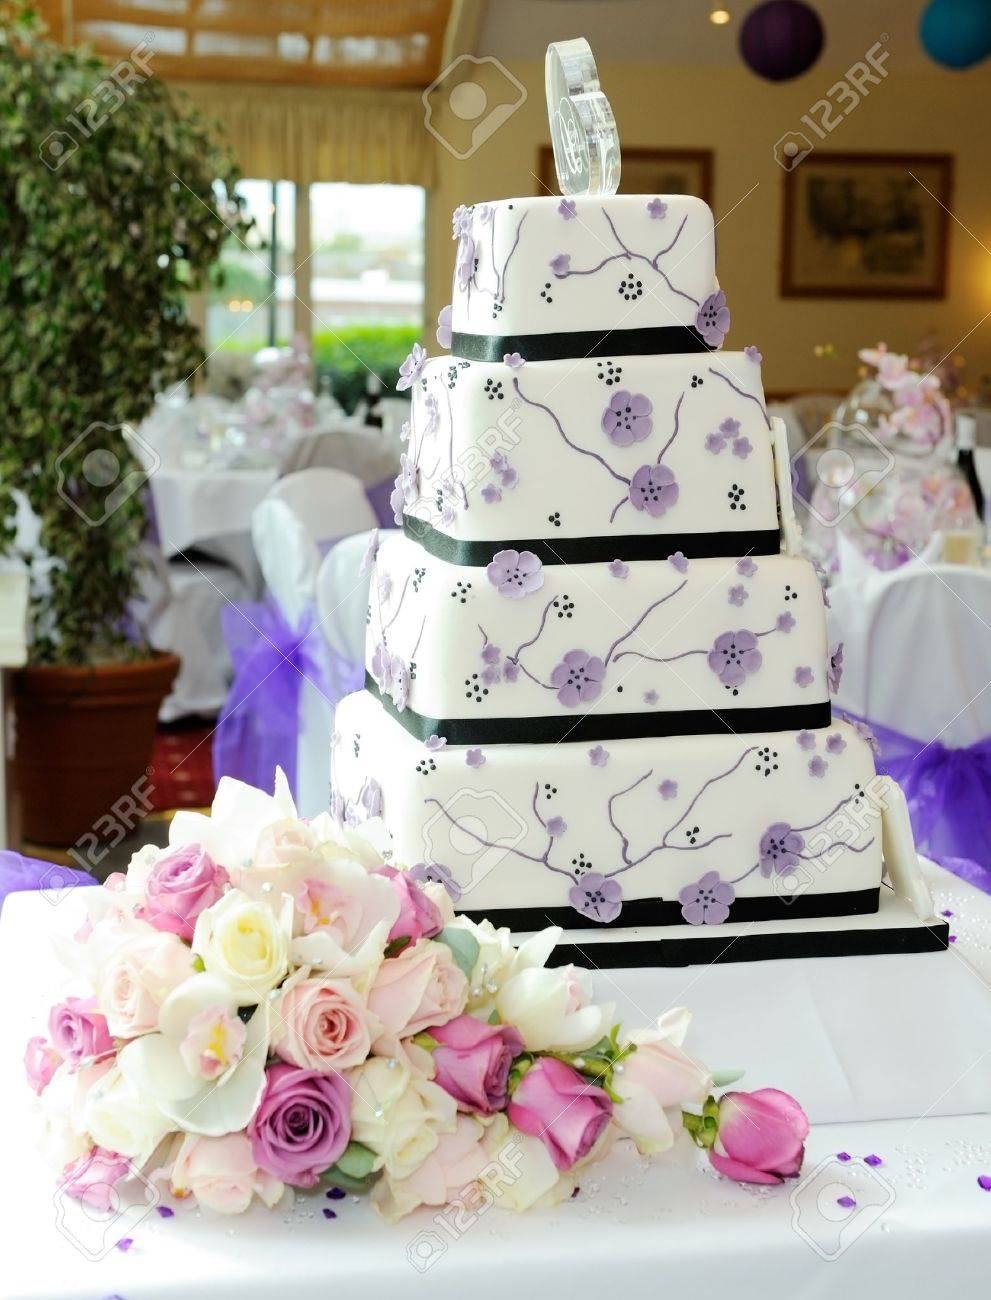 Purple Wedding Cake With Brides Bouquet At Reception Stock Photo ...